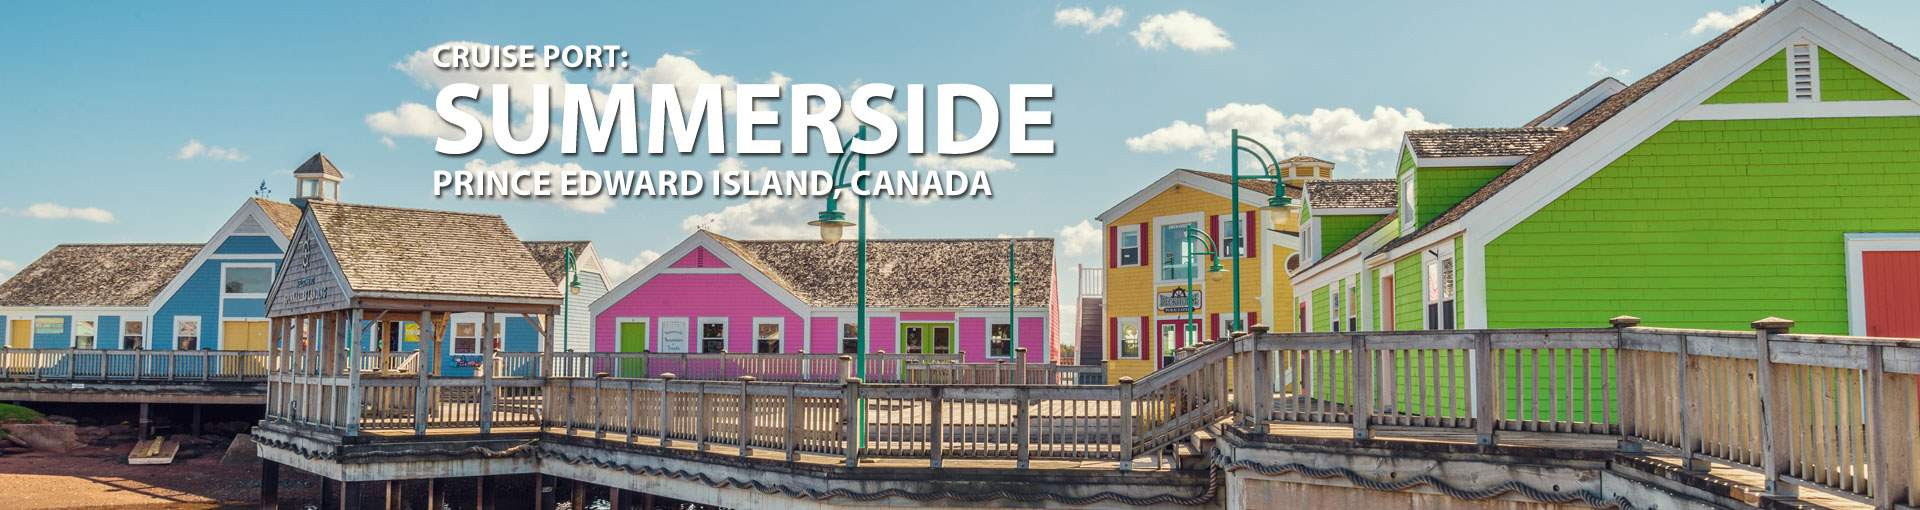 Cruises to Summerside, Prince Edward Island